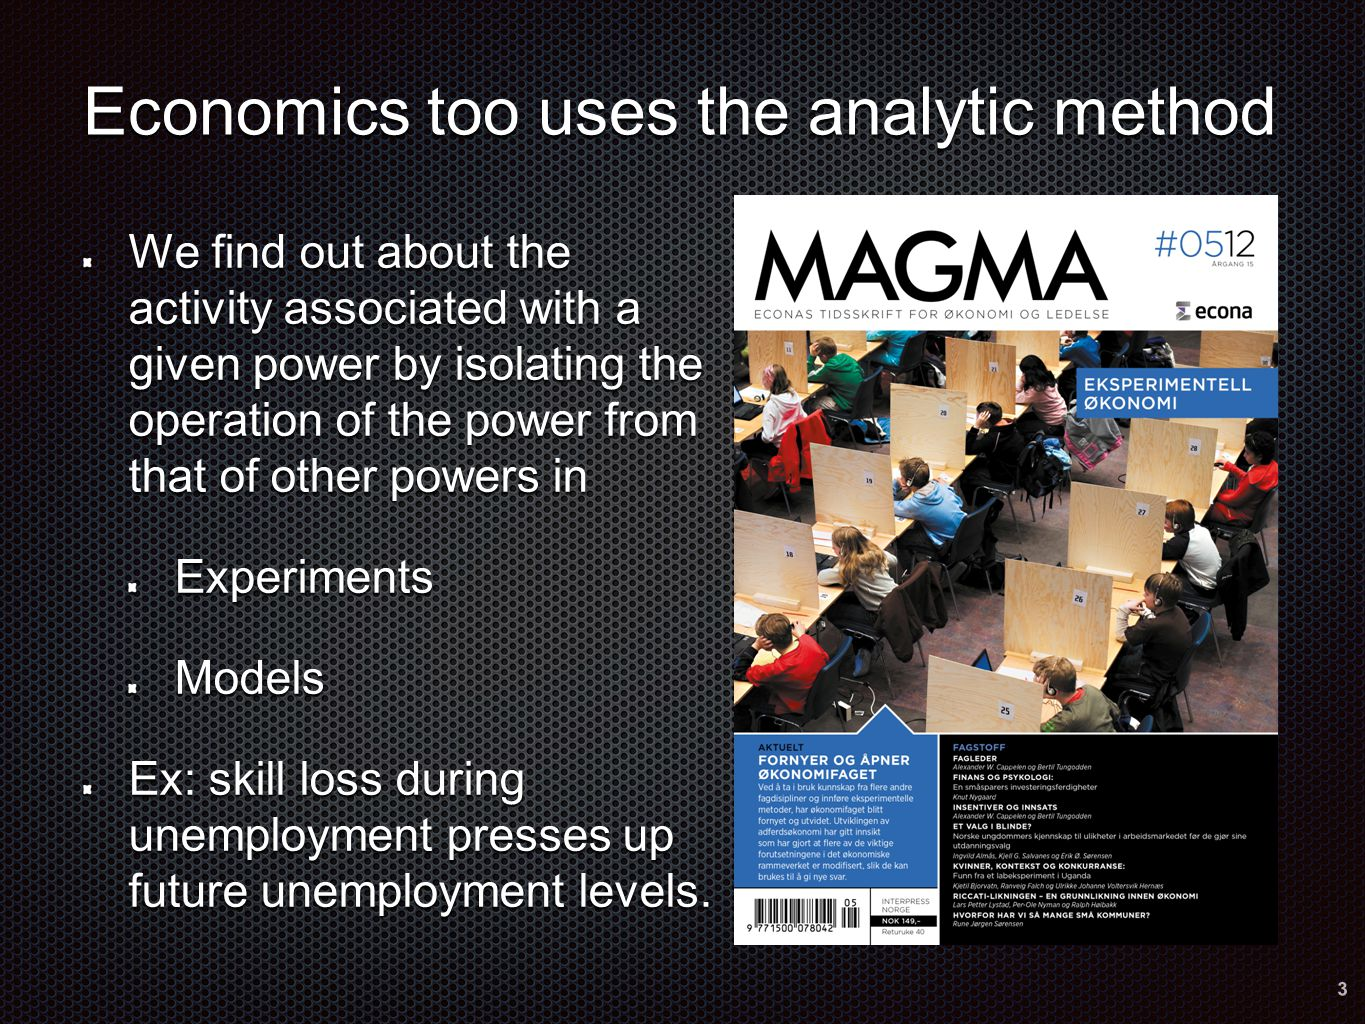 Economics too uses the analytic method We find out about the activity associated with a given power by isolating the operation of the power from that of other powers in ExperimentsModels Ex: skill loss during unemployment presses up future unemployment levels.